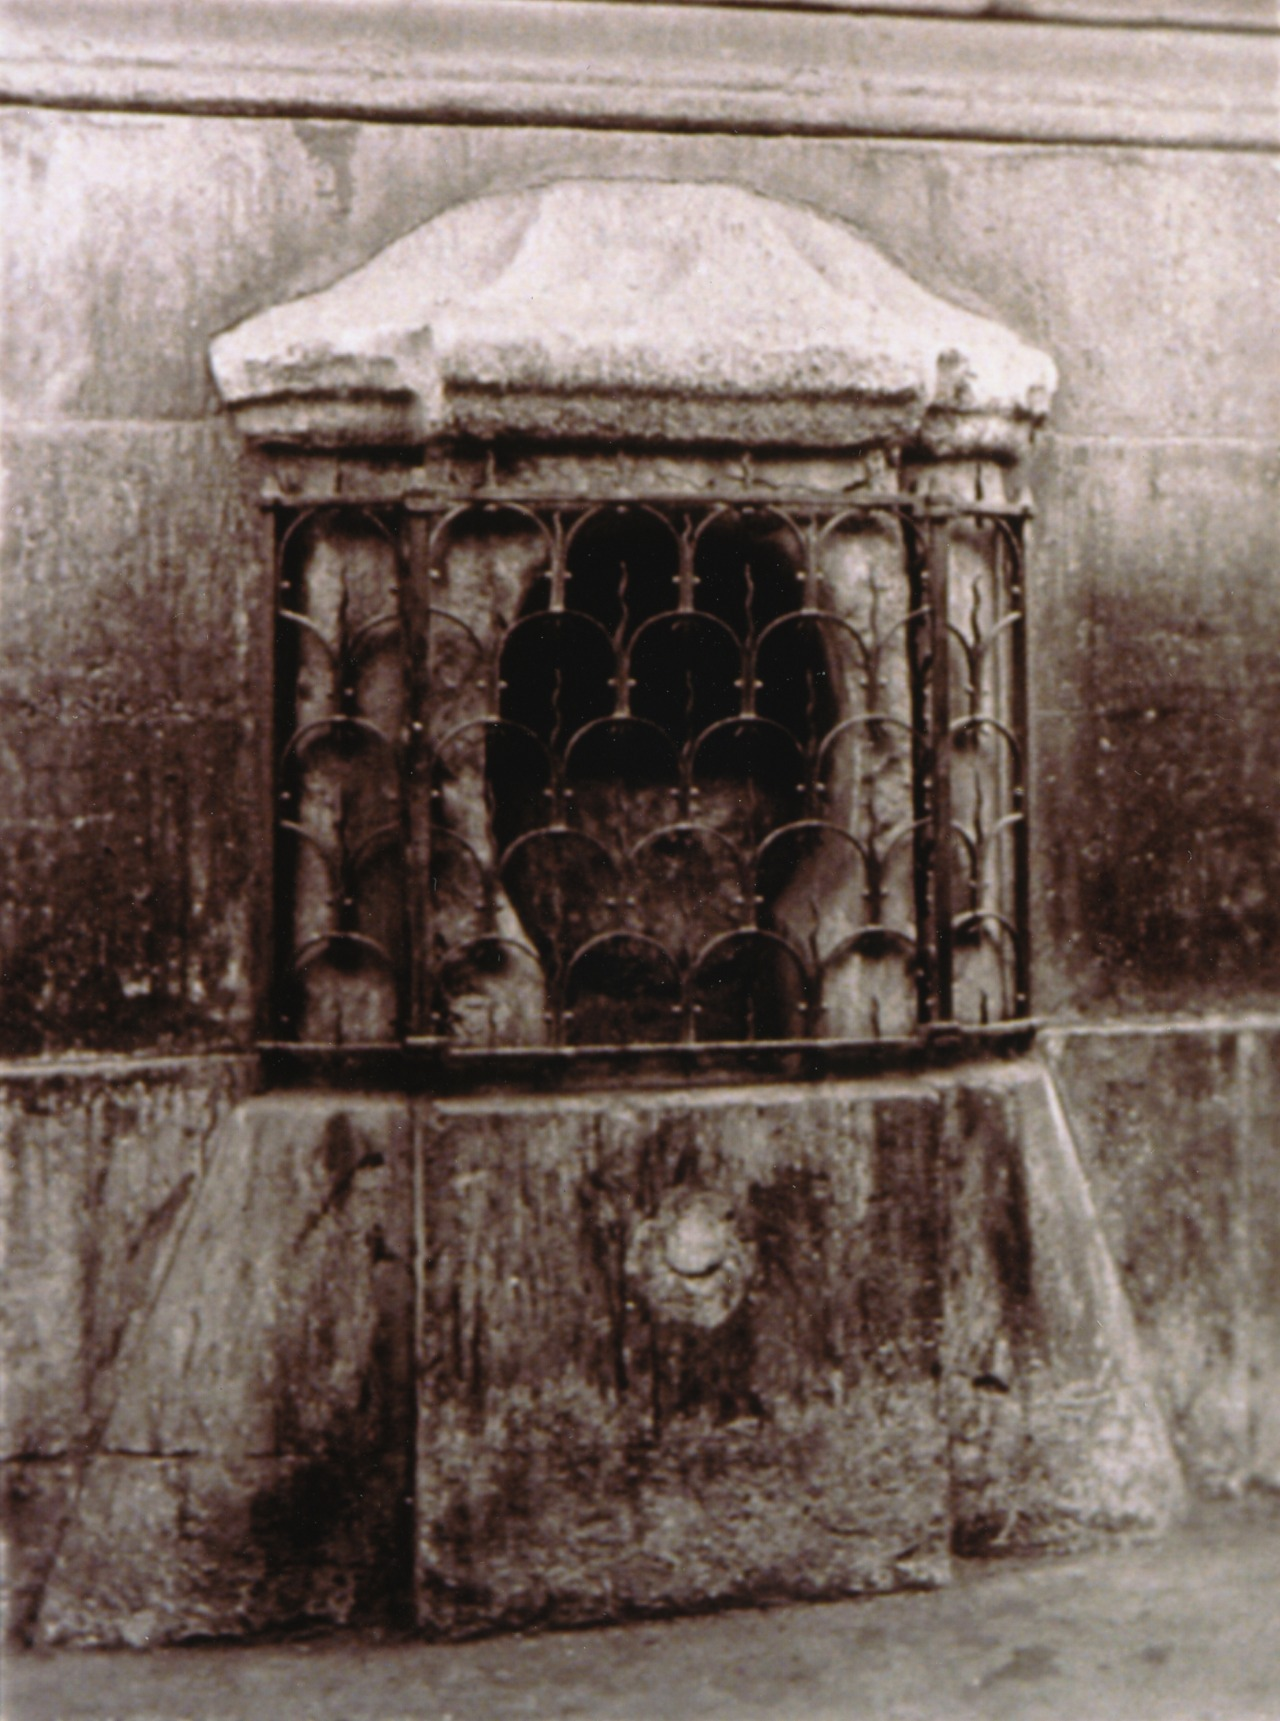 London Stone 1886 London Stone behind a grille in Cannon StreetPhoto: Dixon, Henry (1820-1892) London Metropolitan Archives